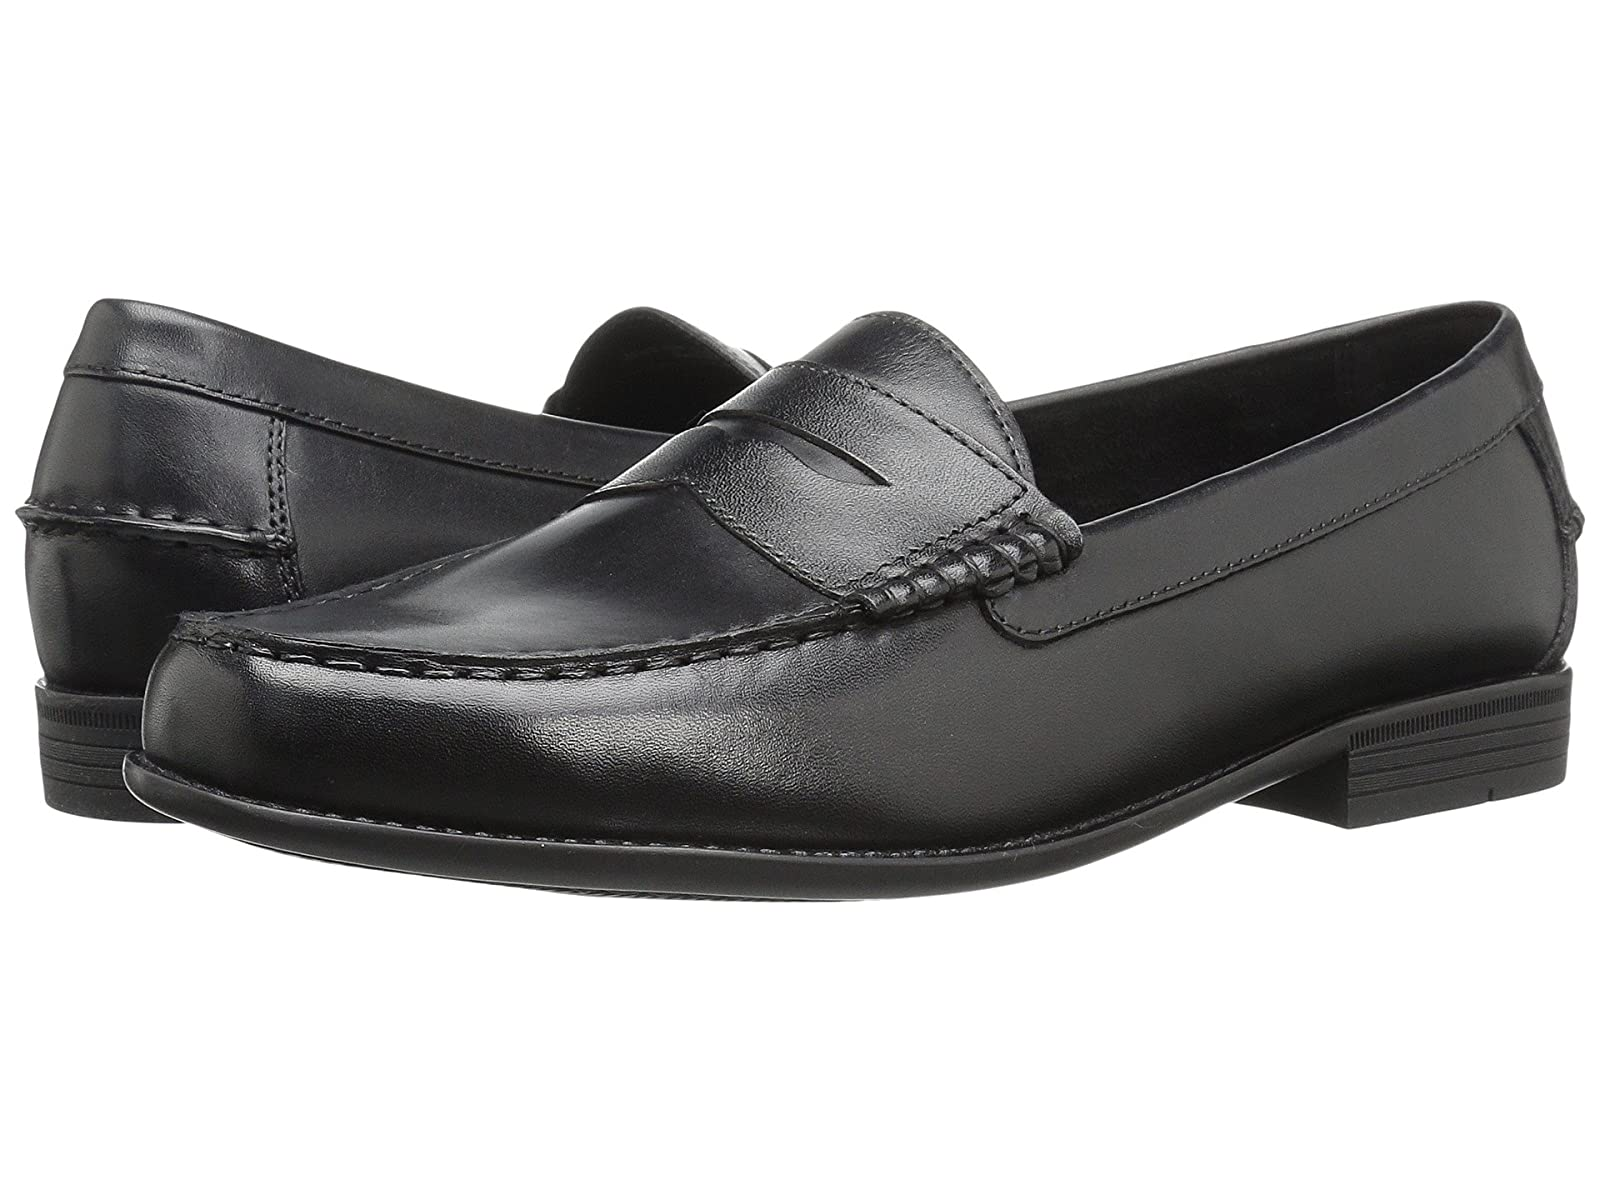 Cole Haan Dustin Penny IICheap and distinctive eye-catching shoes